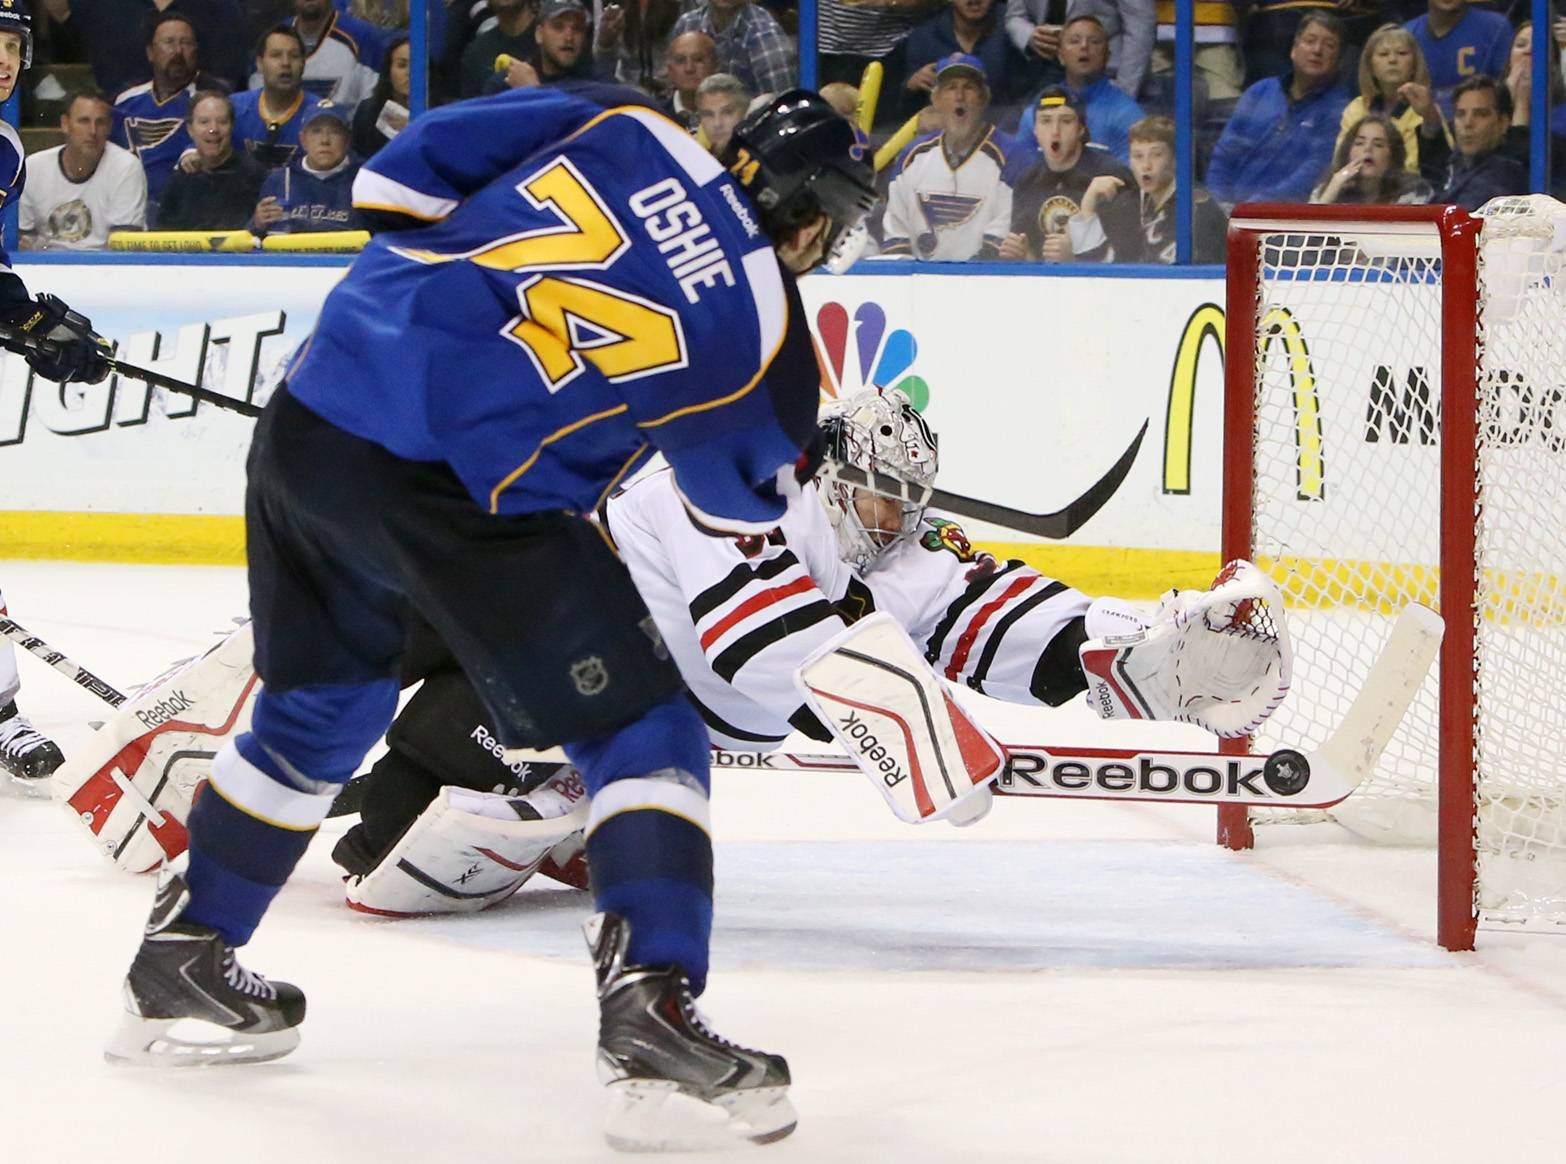 Chicago Blackhawks goaltender Corey Crawford dives back across the crease to try and stop a wide-open shot by St. Louis Blues right wing T.J. Oshie in third period action.